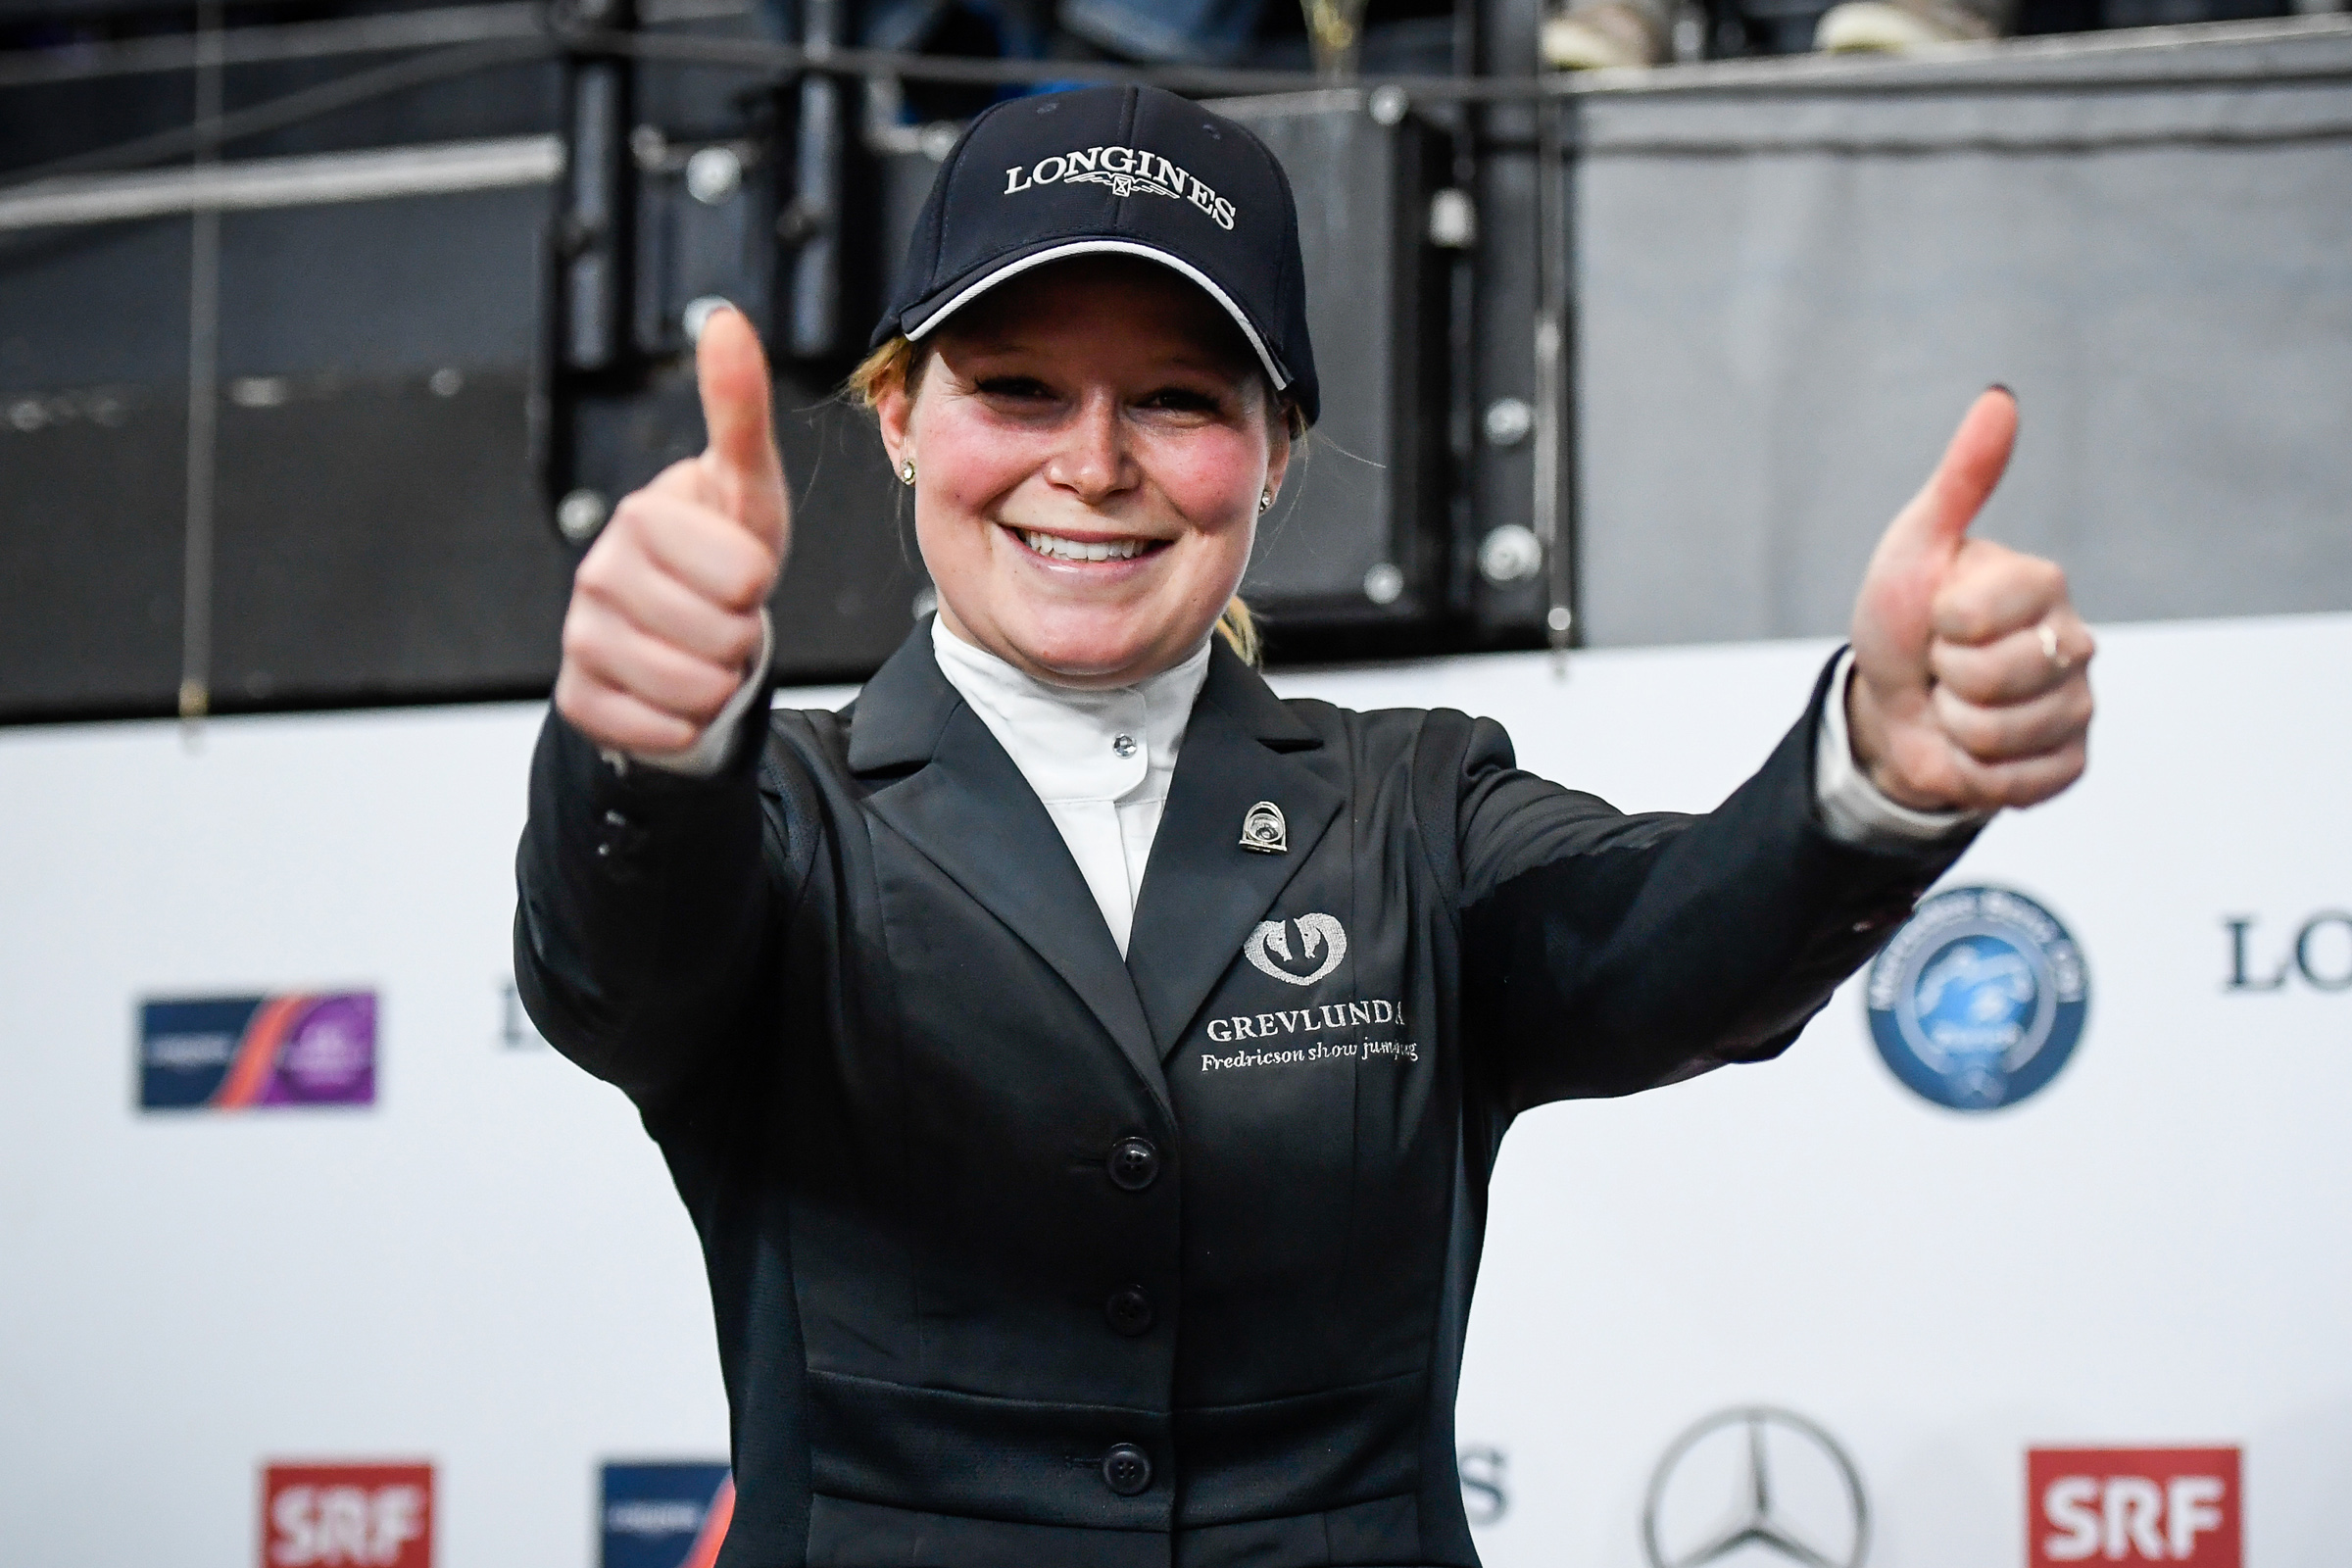 Longines Fei World Cup Jumping™ Zurich